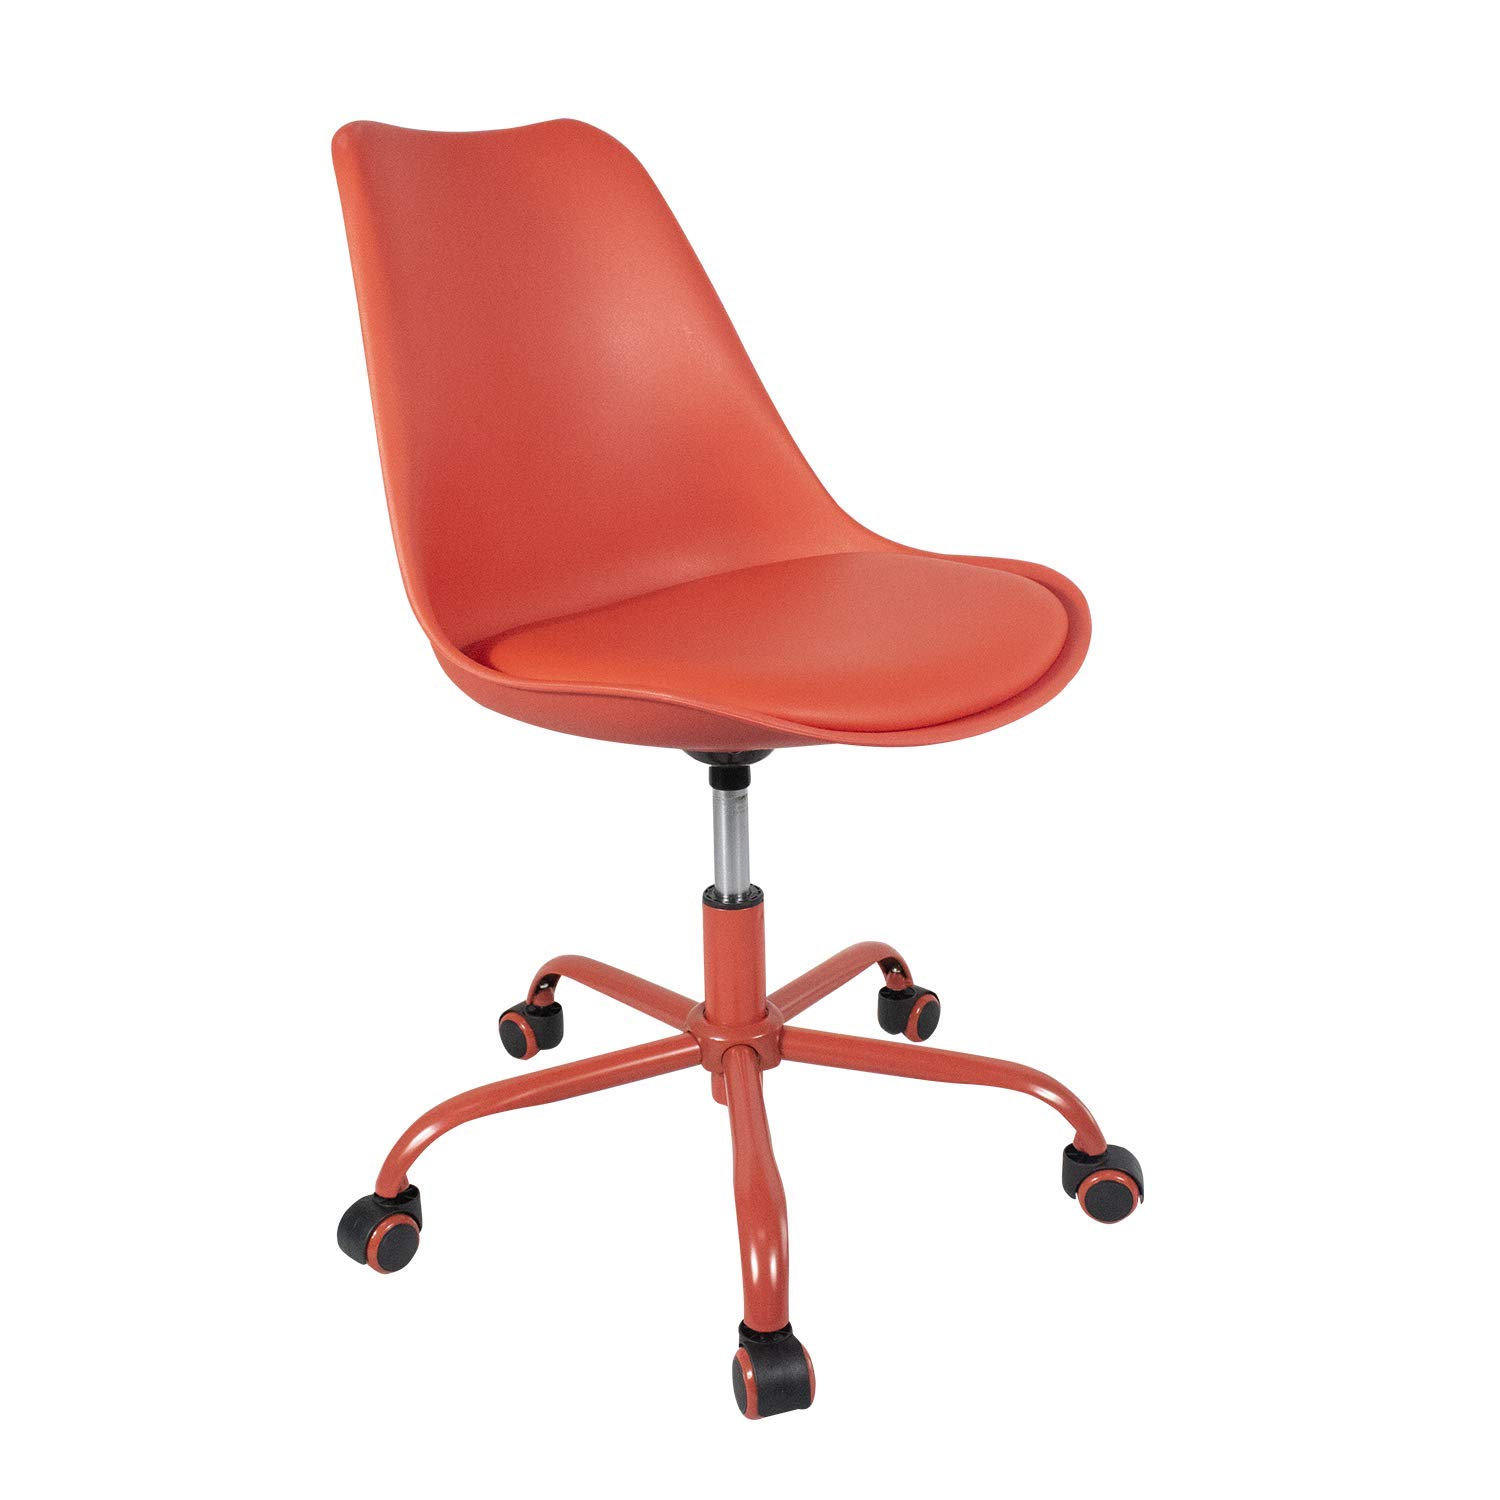 YURUCY Adjustable Height Padded Seat Mobile Chair with Wheels for Student Office Desk Dining Classic Chairs for Kitchen Home Bedroom Living Room Red